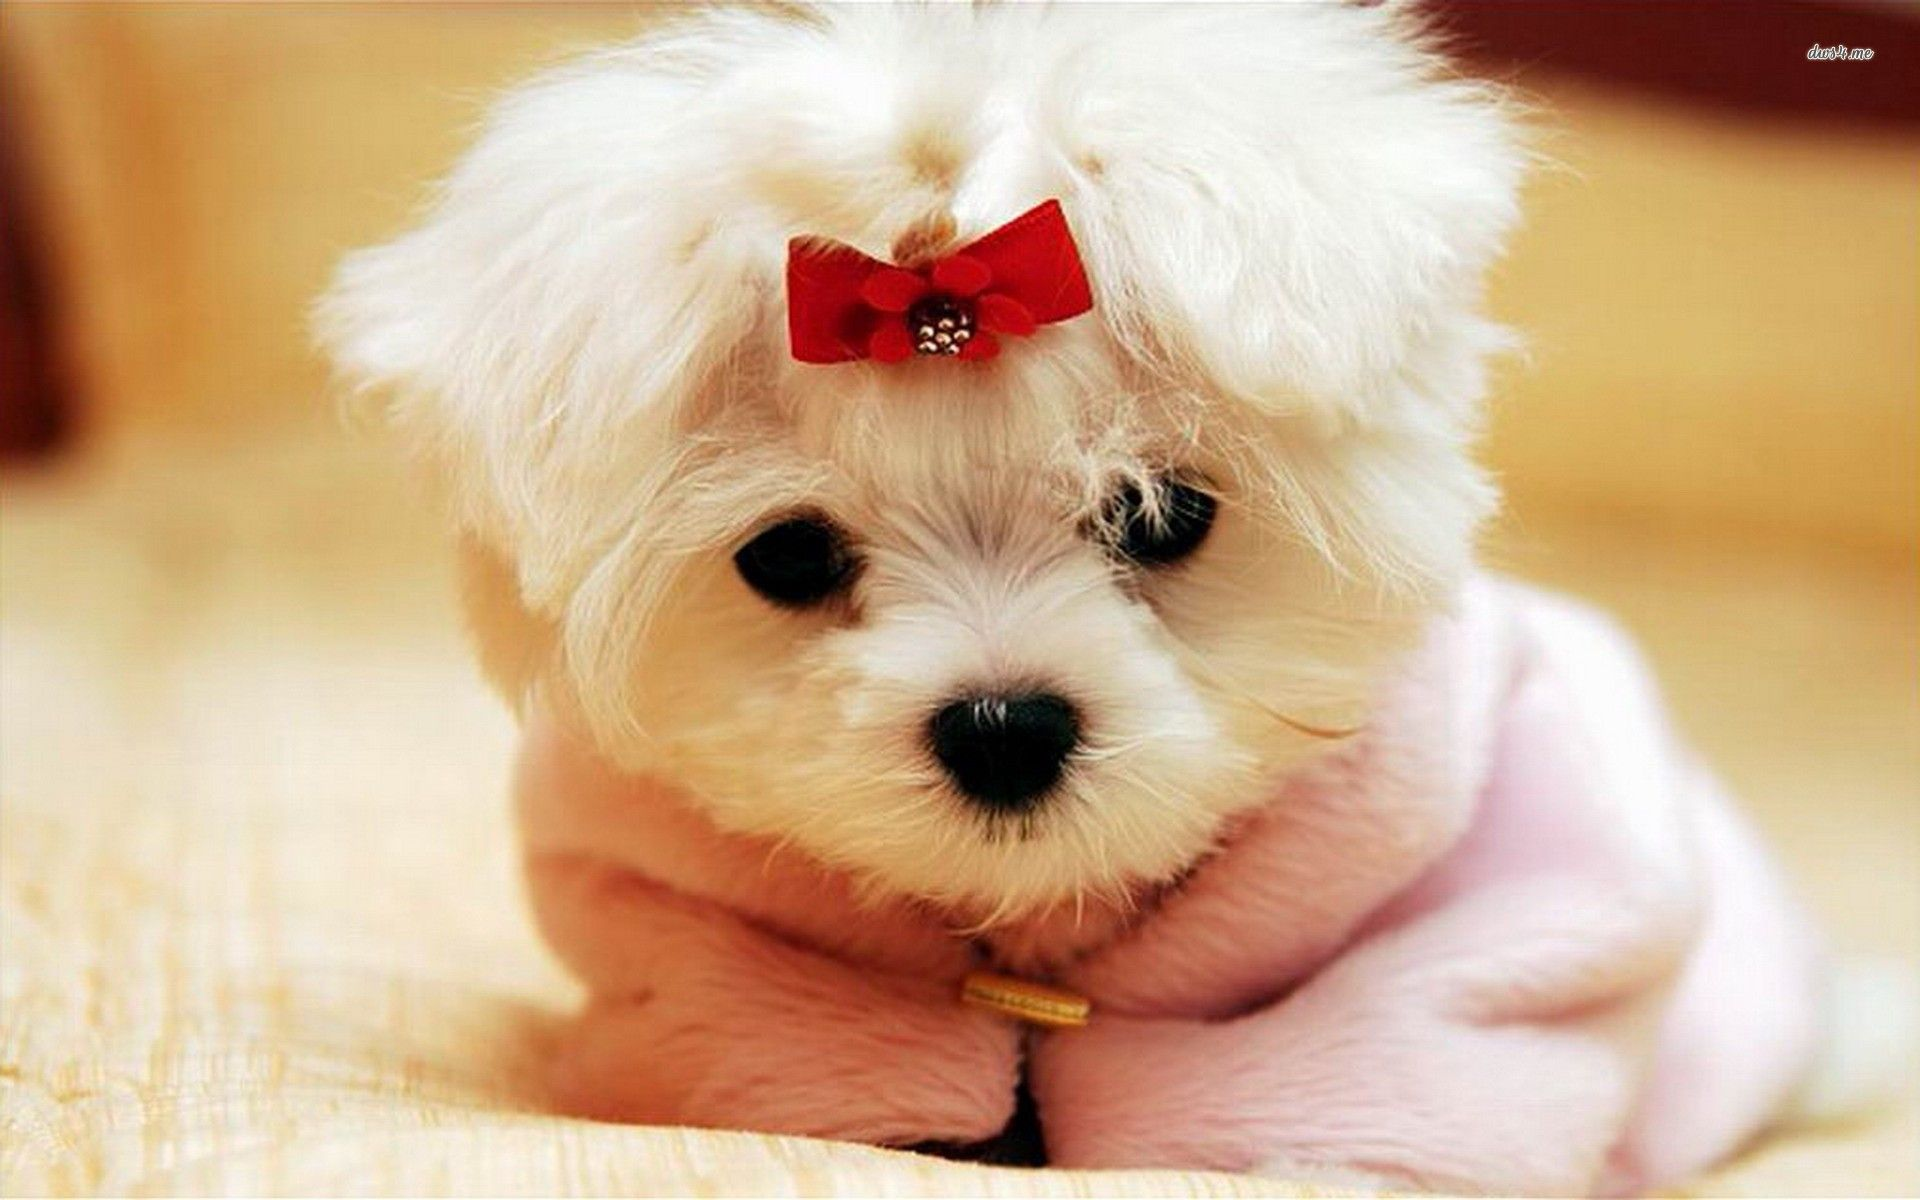 Cute Puppy Wallpaper Cute dog wallpaper, Cute baby